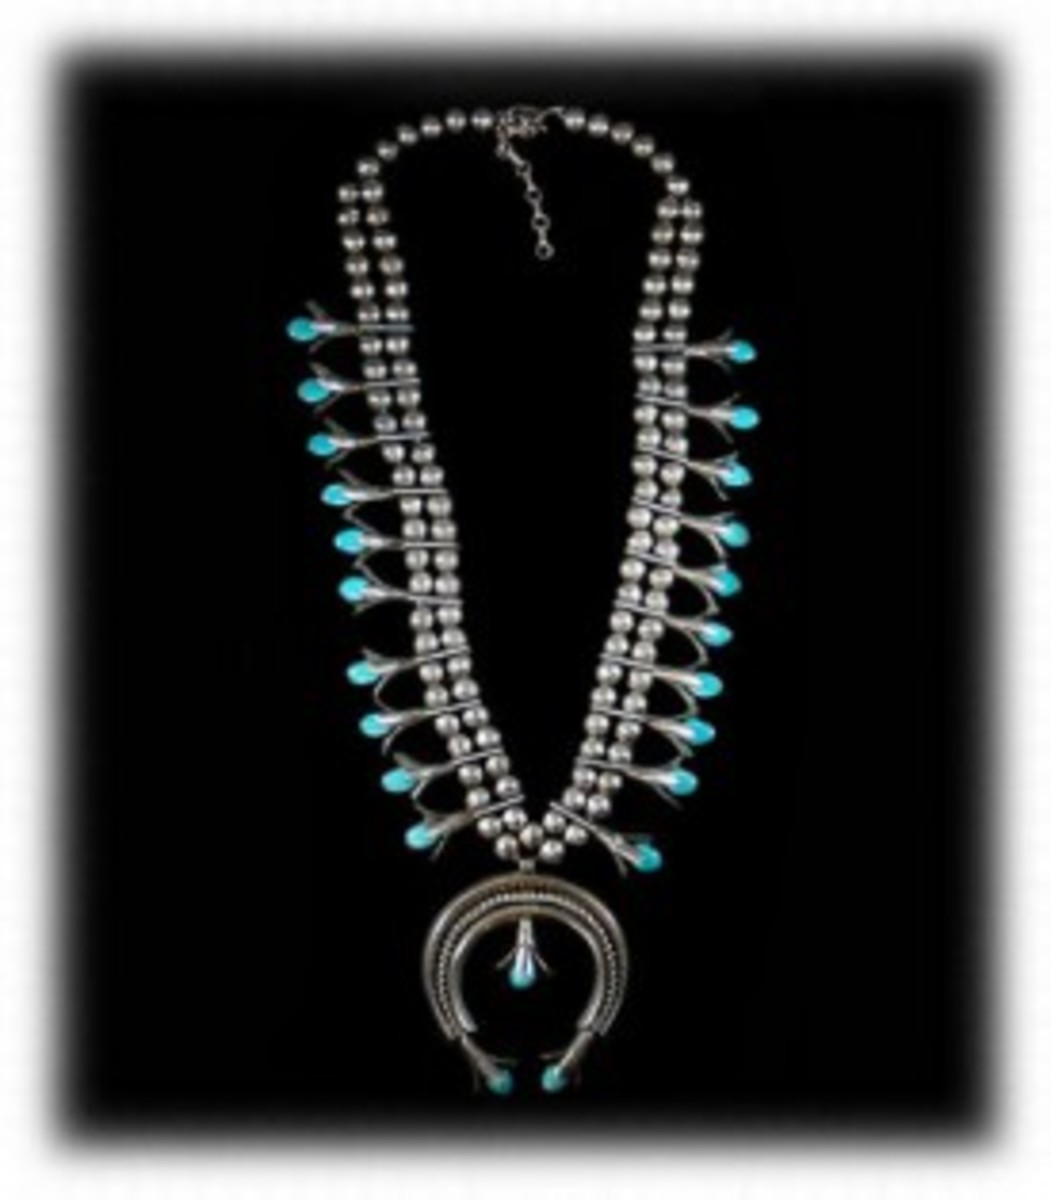 Vintage Navajo Squash Blossom necklace made between 1940-1960.  Made with sterling silver.  This is also a classic style that is still made today and very popular.